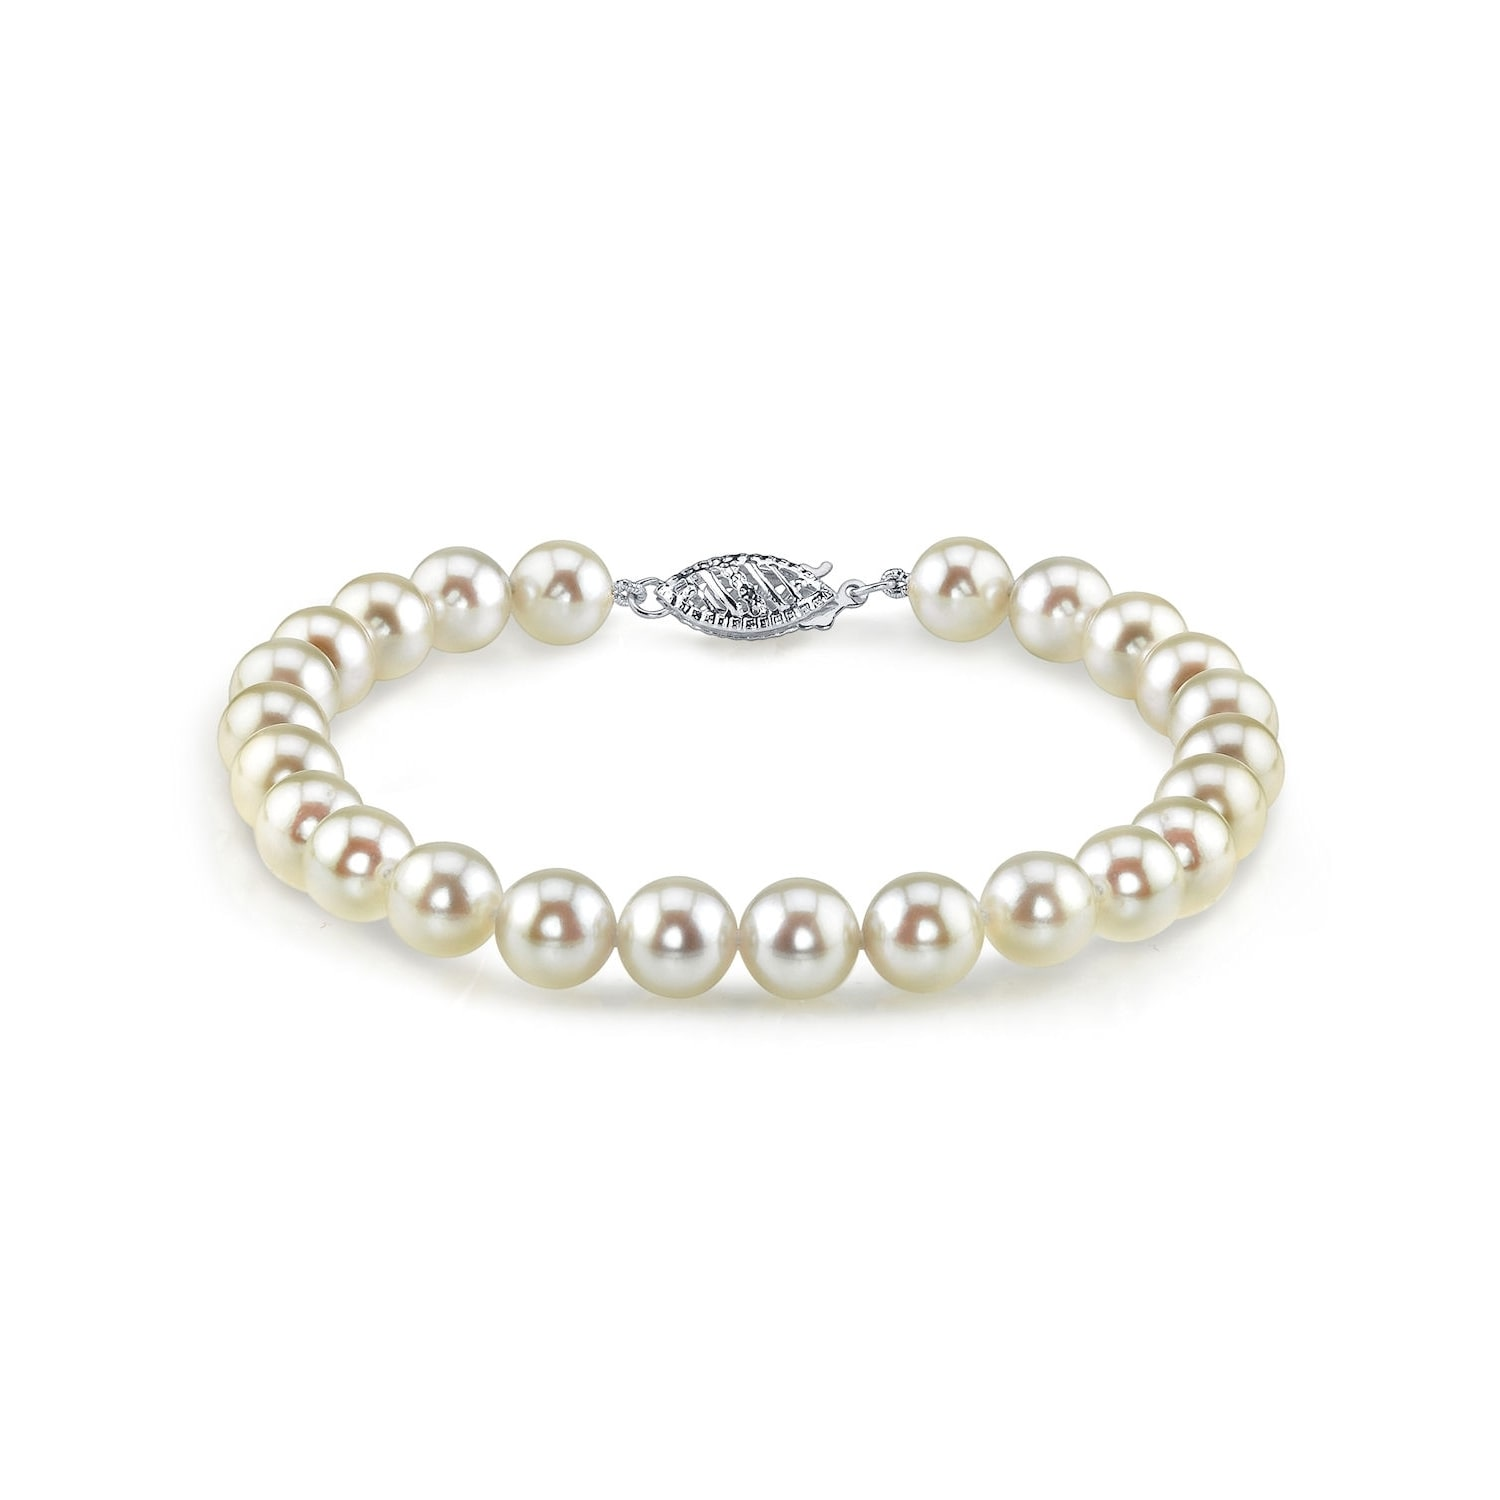 Radiance Pearl 14k Gold AAA-quality White Akoya Pearl Bracelet (8.5-9mm) by Overstock